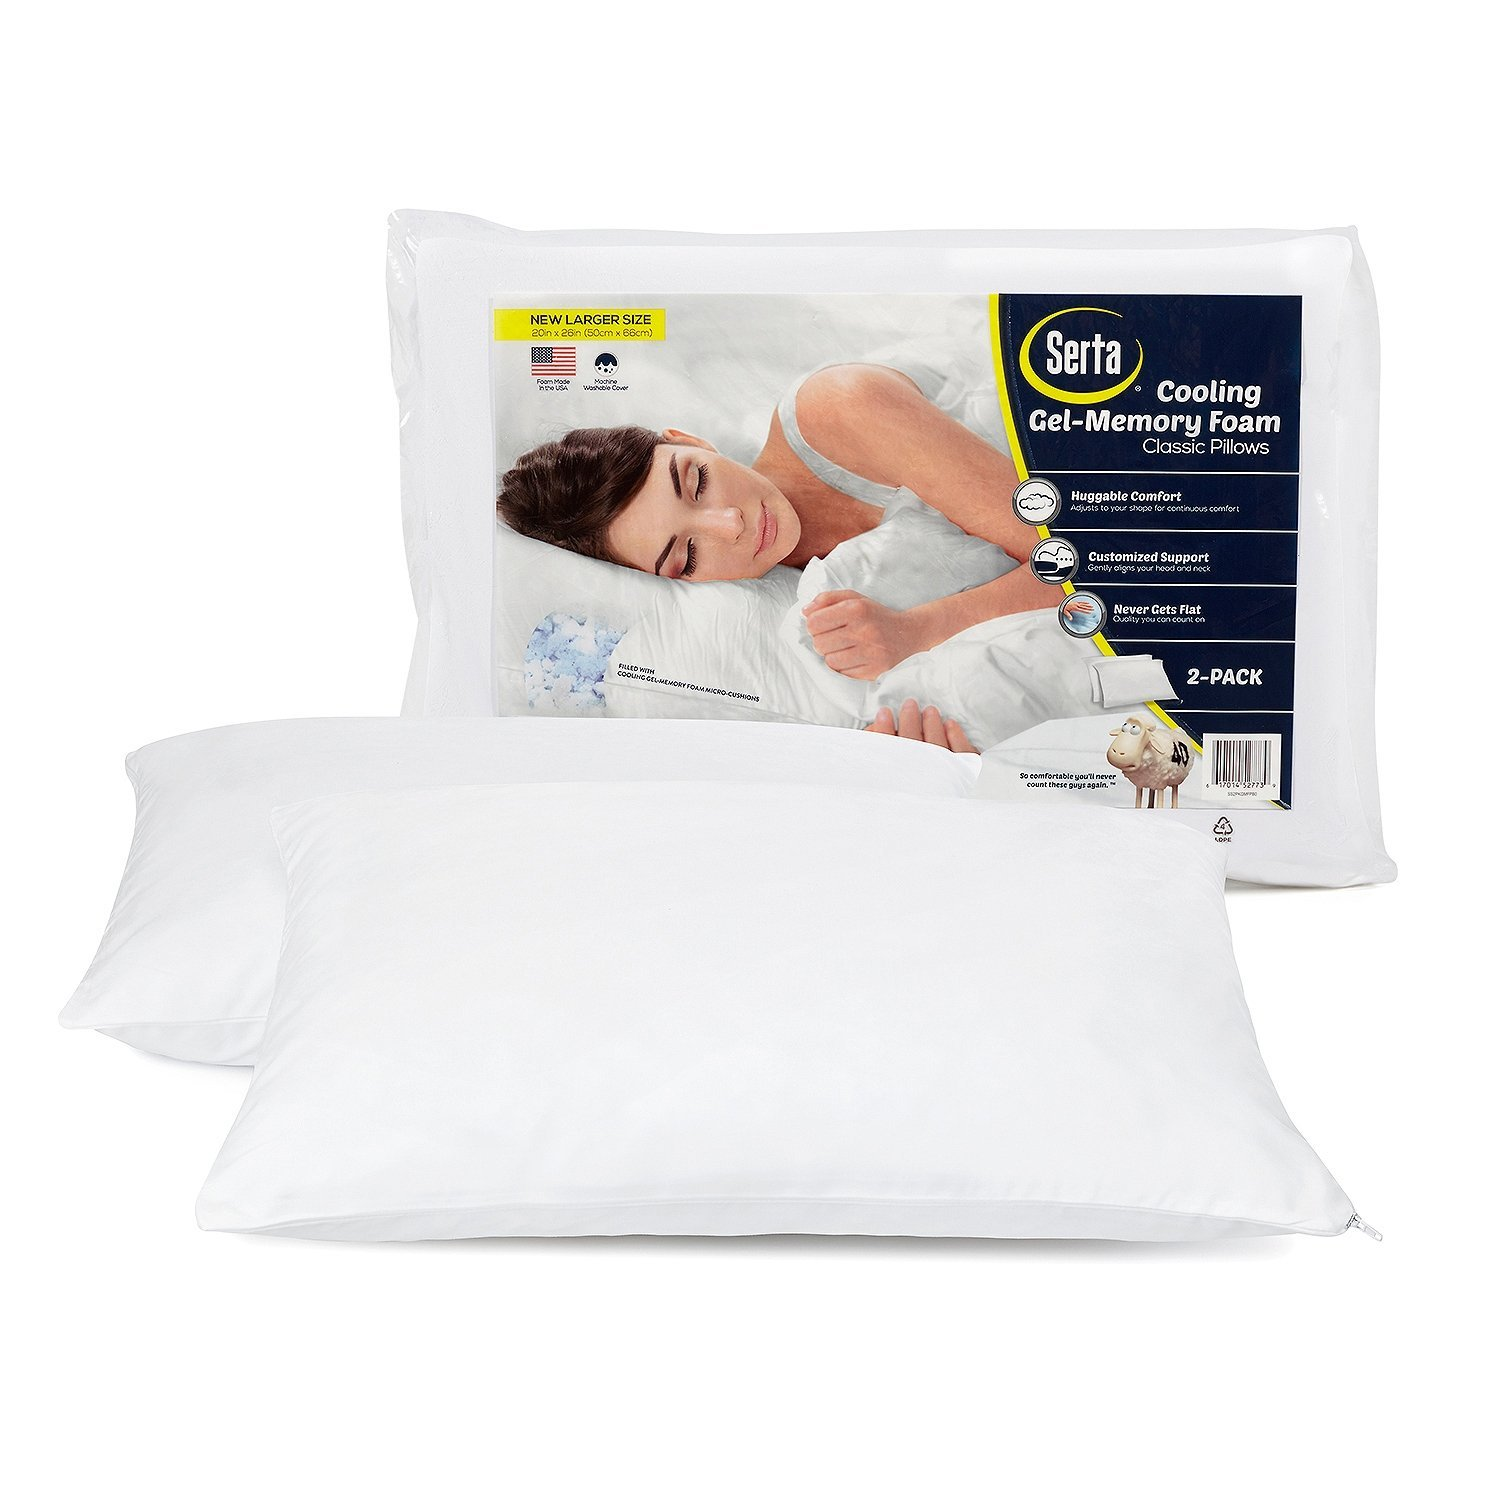 Amazon.com: Serta Gel Memory Foam Cluster Pillows, Set of 2: Home